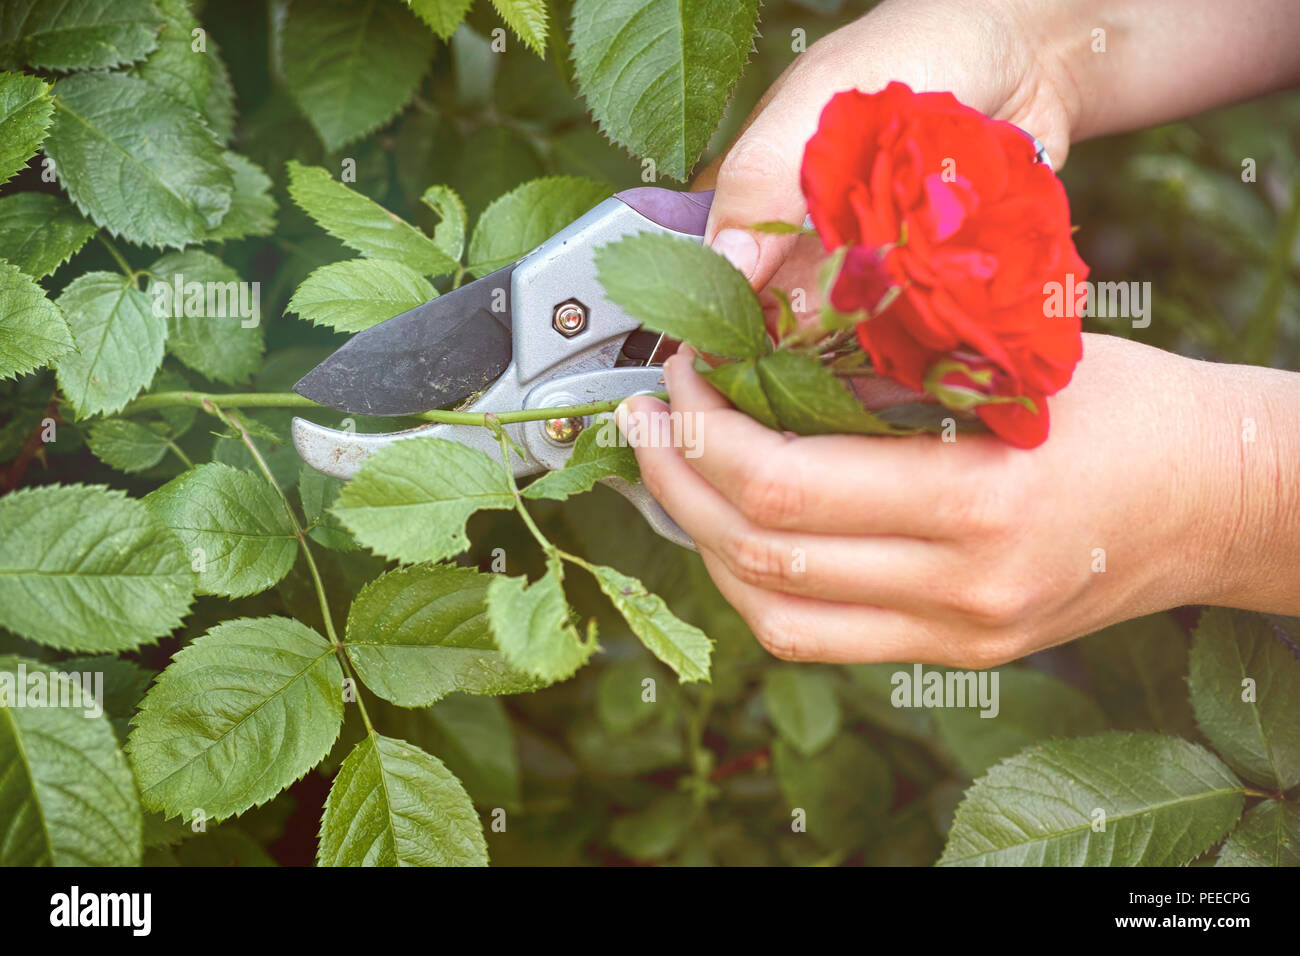 Woman hands with gardening shears cutting red rose of bush. Close-up. - Stock Image